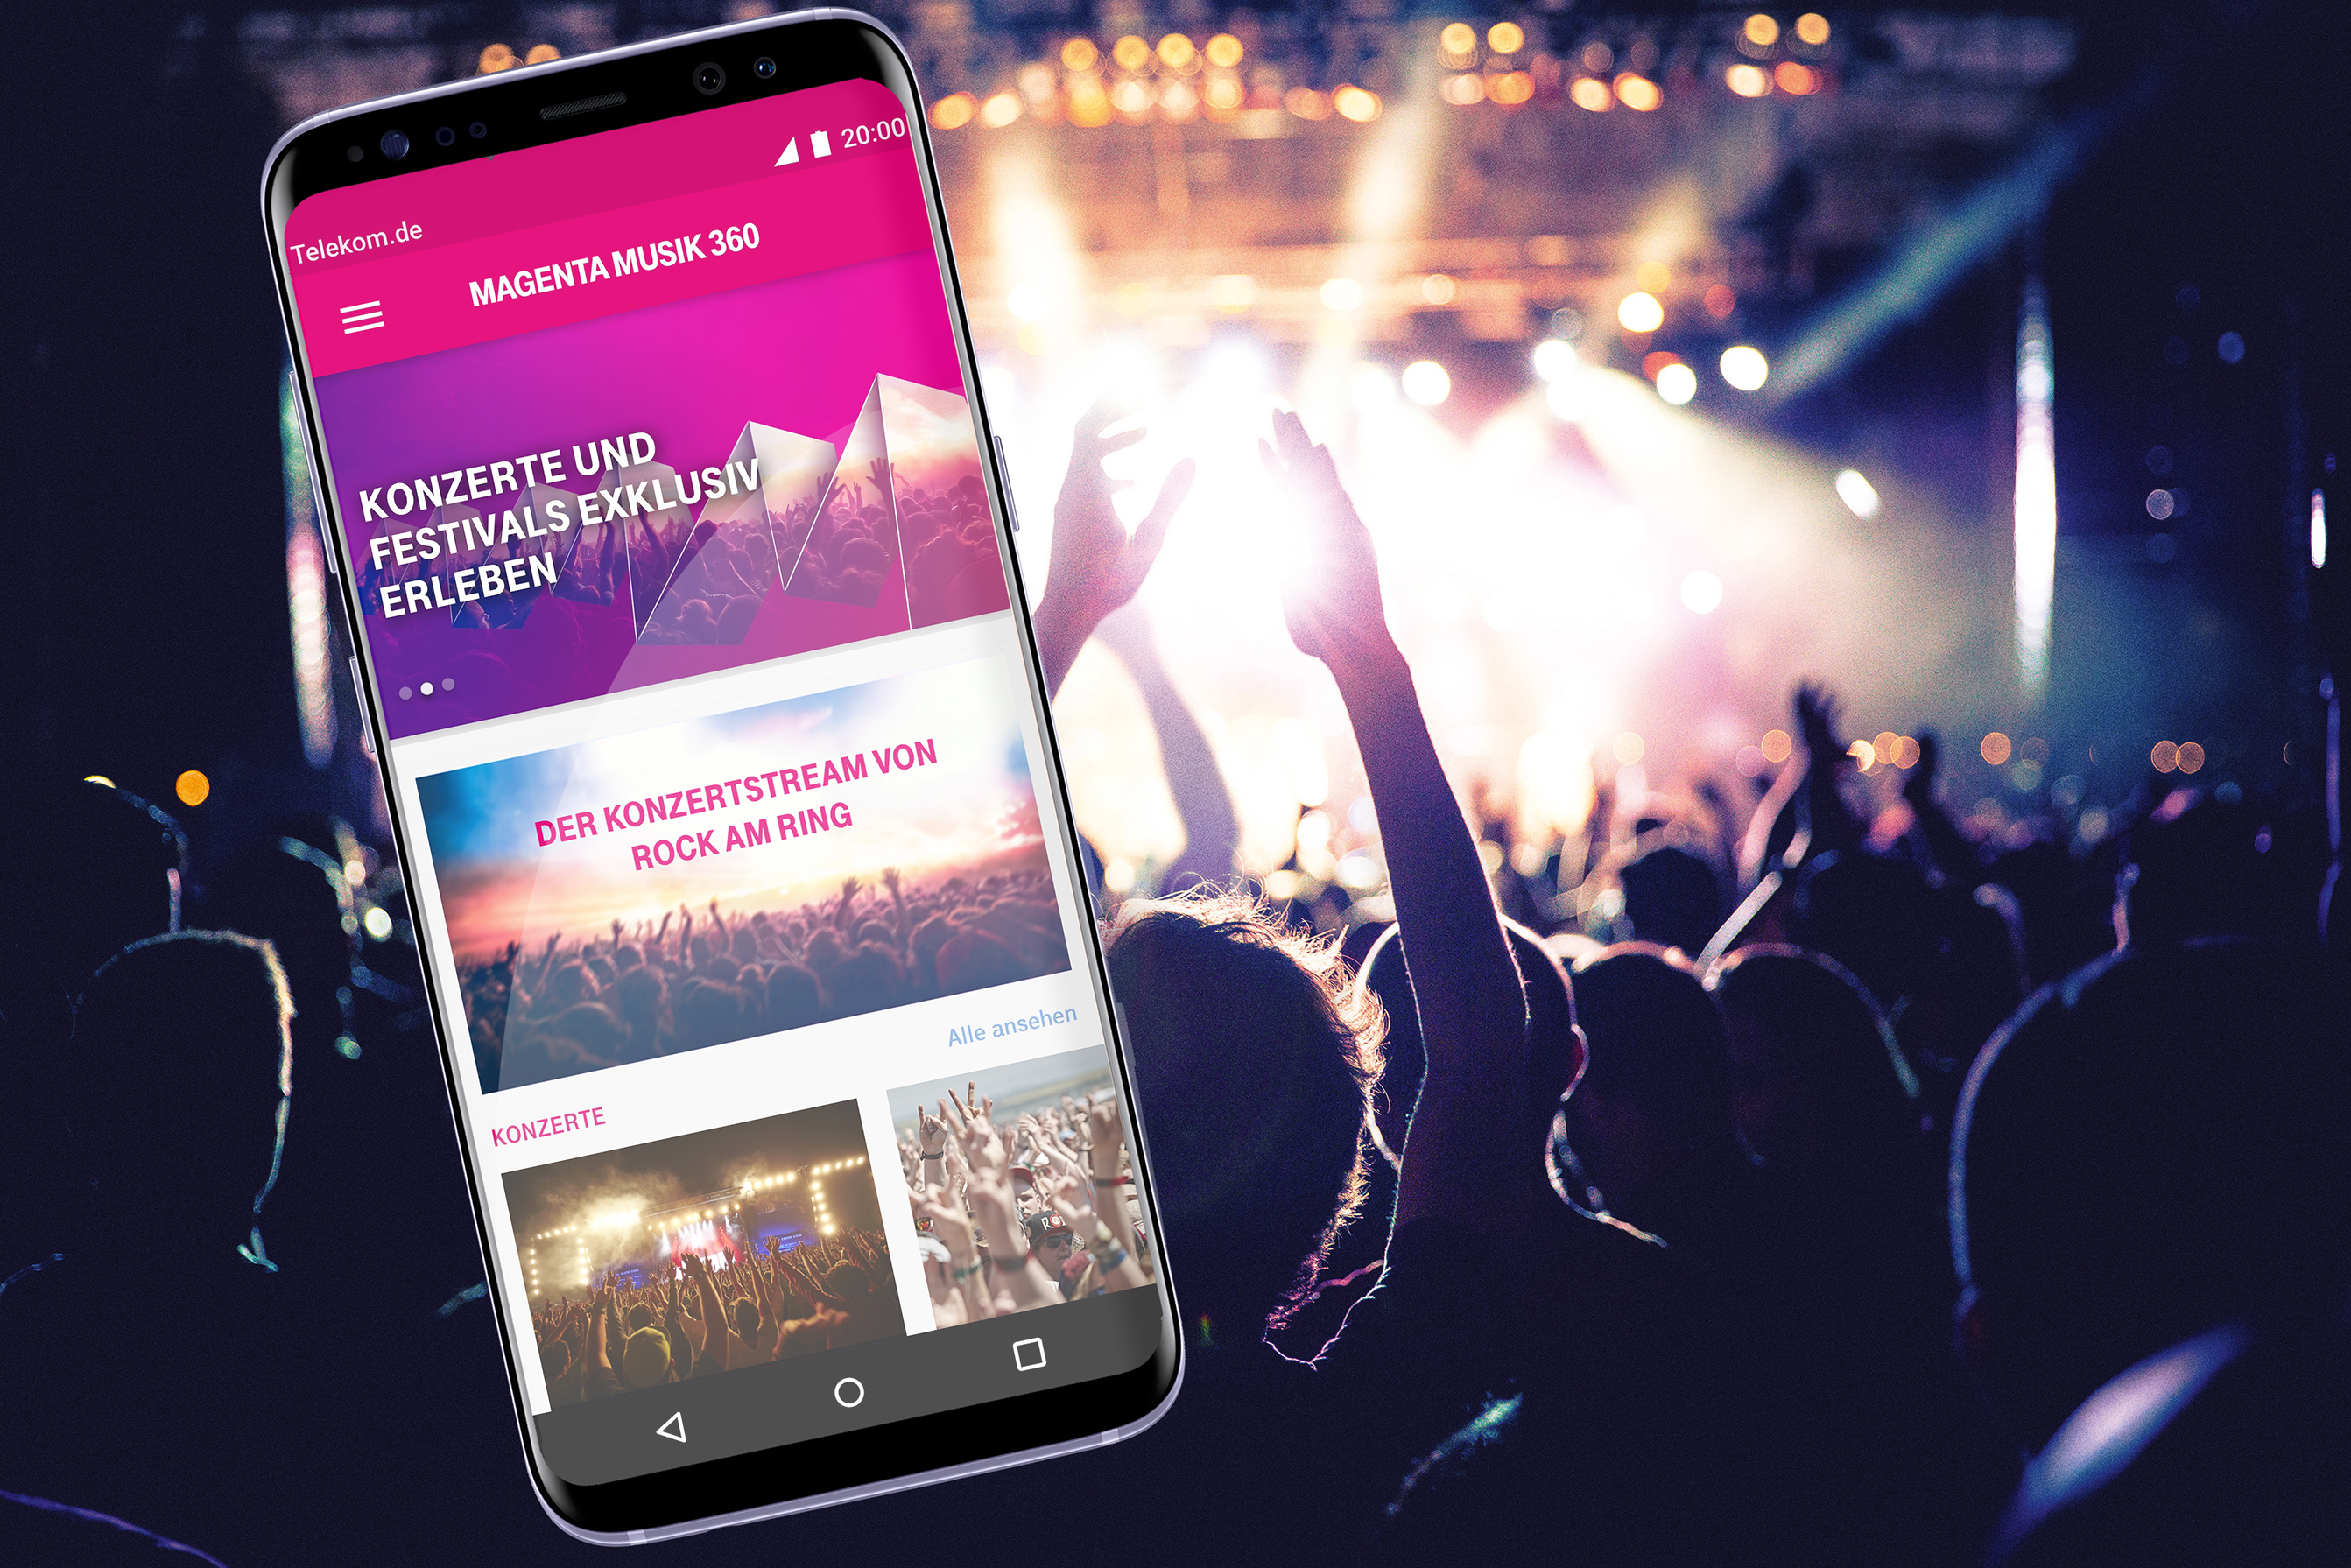 Auftakt bei Rock am Ring: MagentaMusik 360 bietet Musik-Events exklusiv in 360° Livestreams